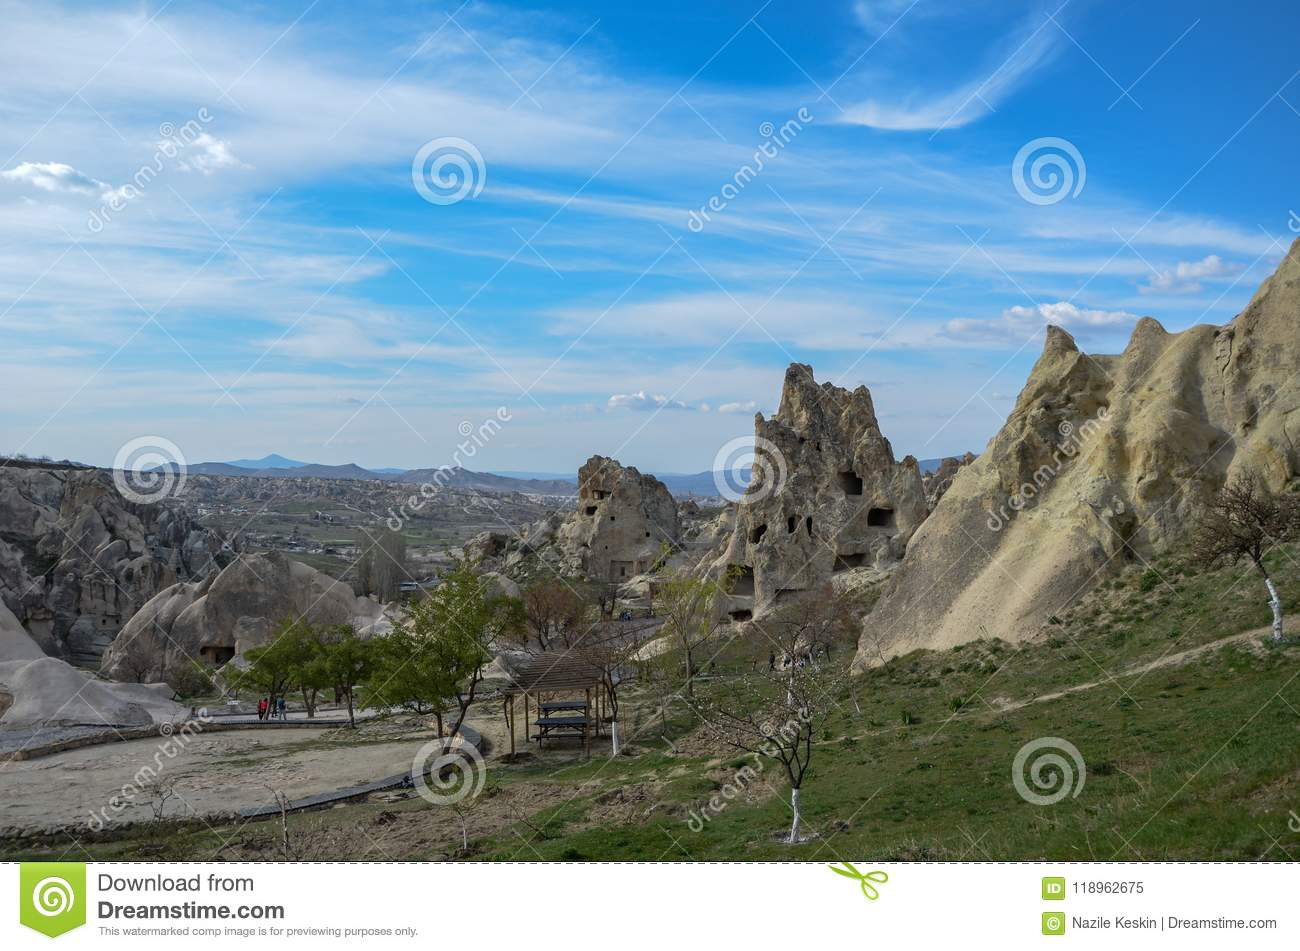 National Volcanic rocks with ancient cave houses in Goreme/ Cappadocia -Turkey.